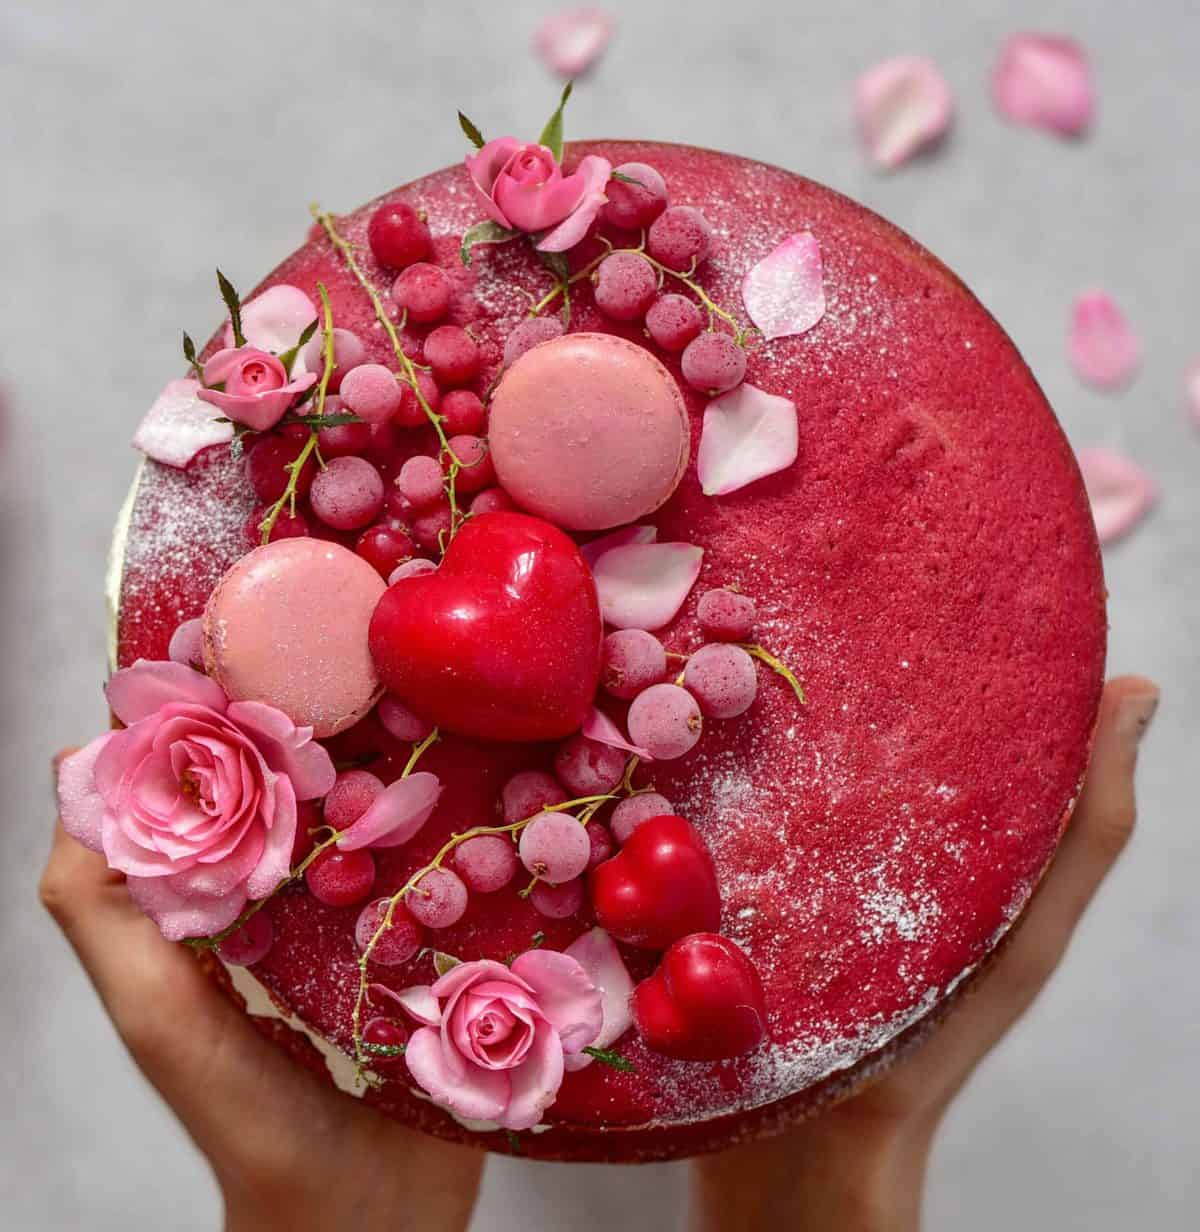 homemade red velvet cake topped with berries, chocolate heart bonbons, and edible flowers